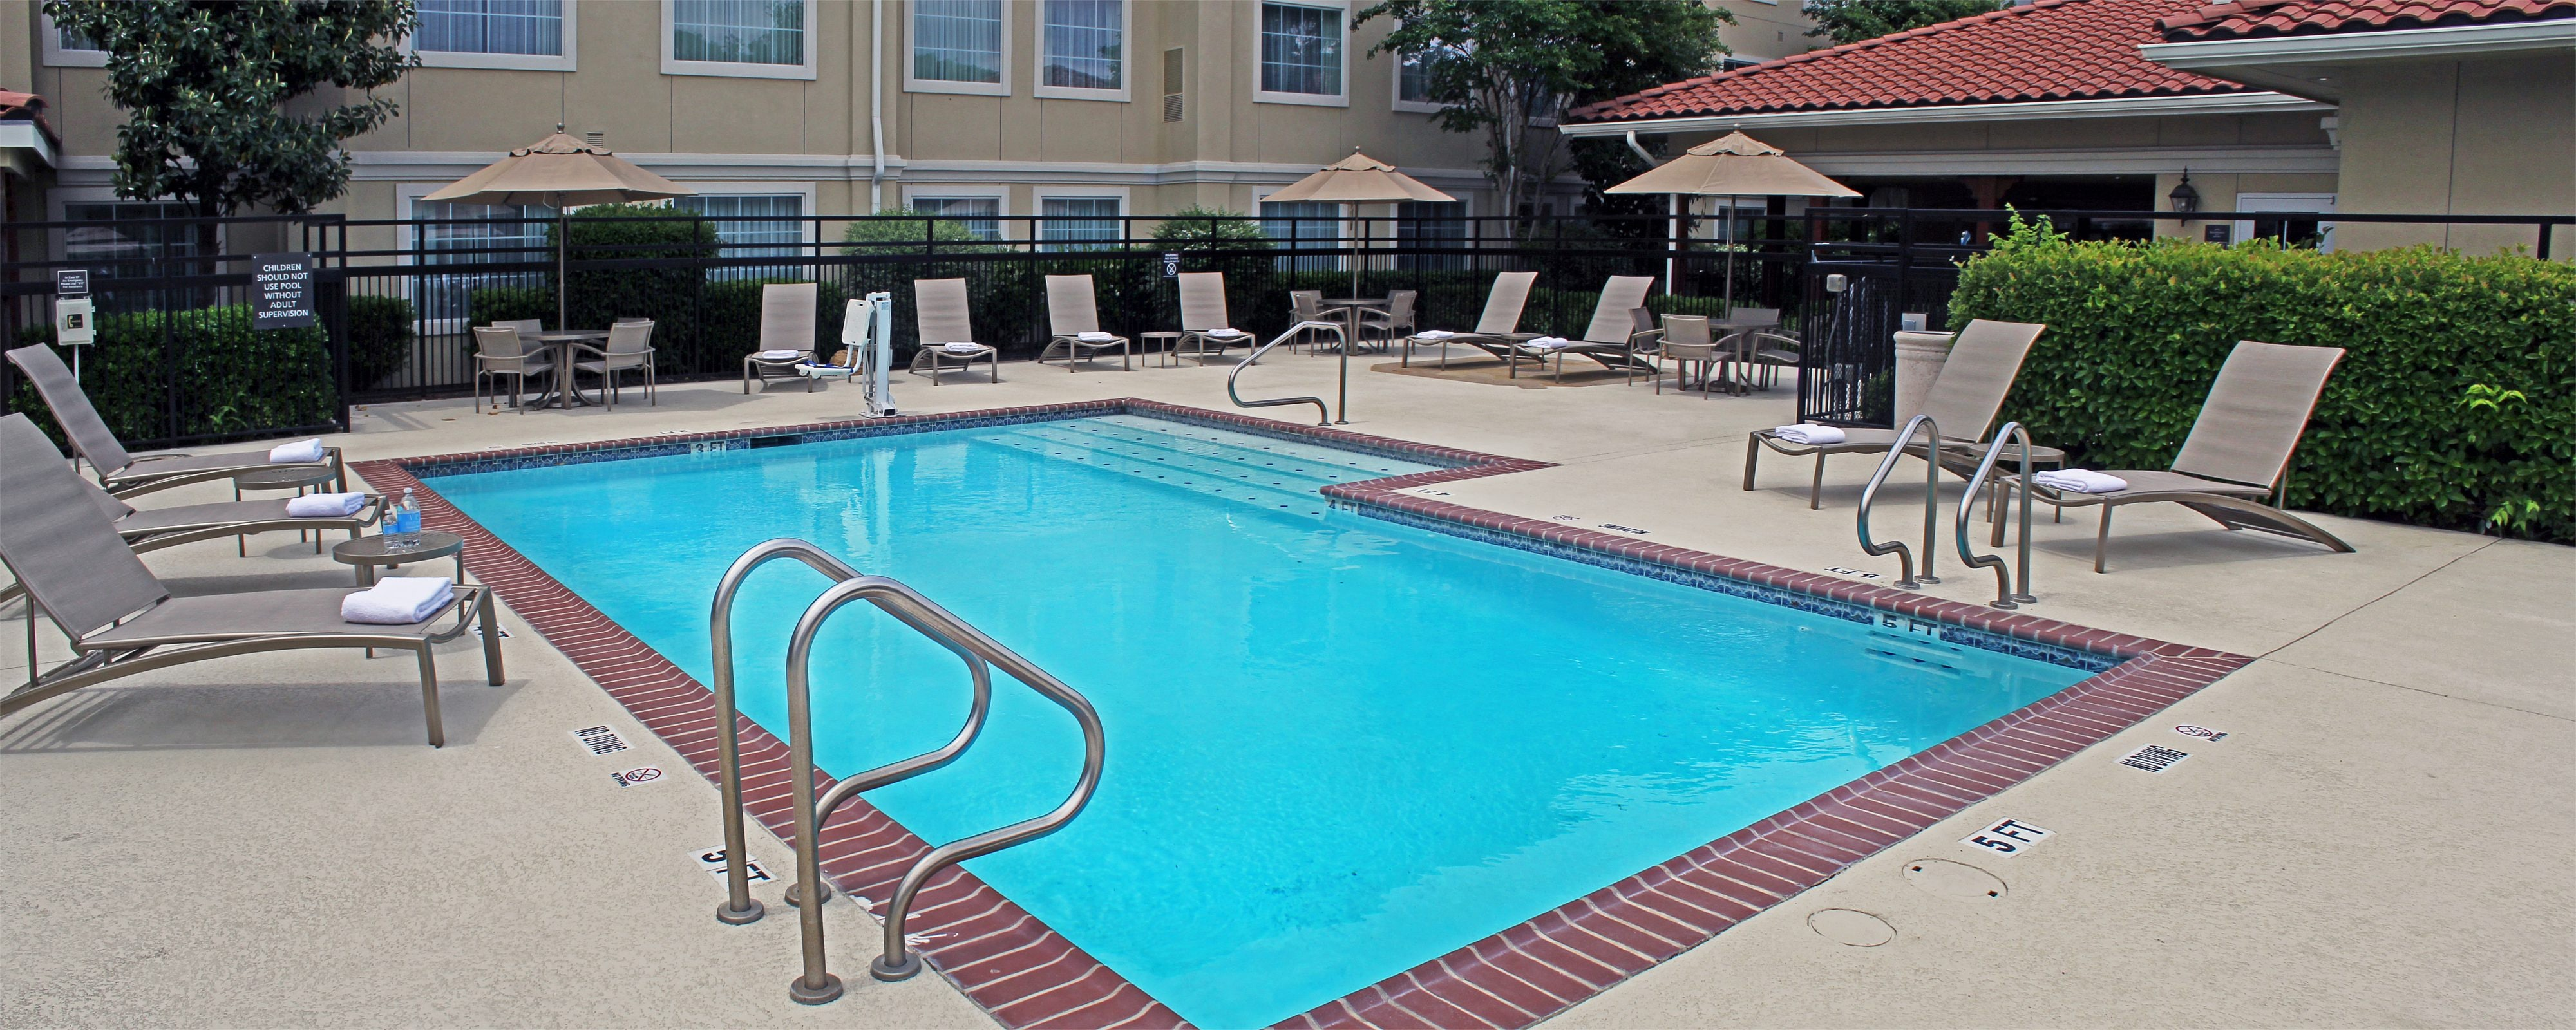 Temple Texas Hotel Outdoor Pool